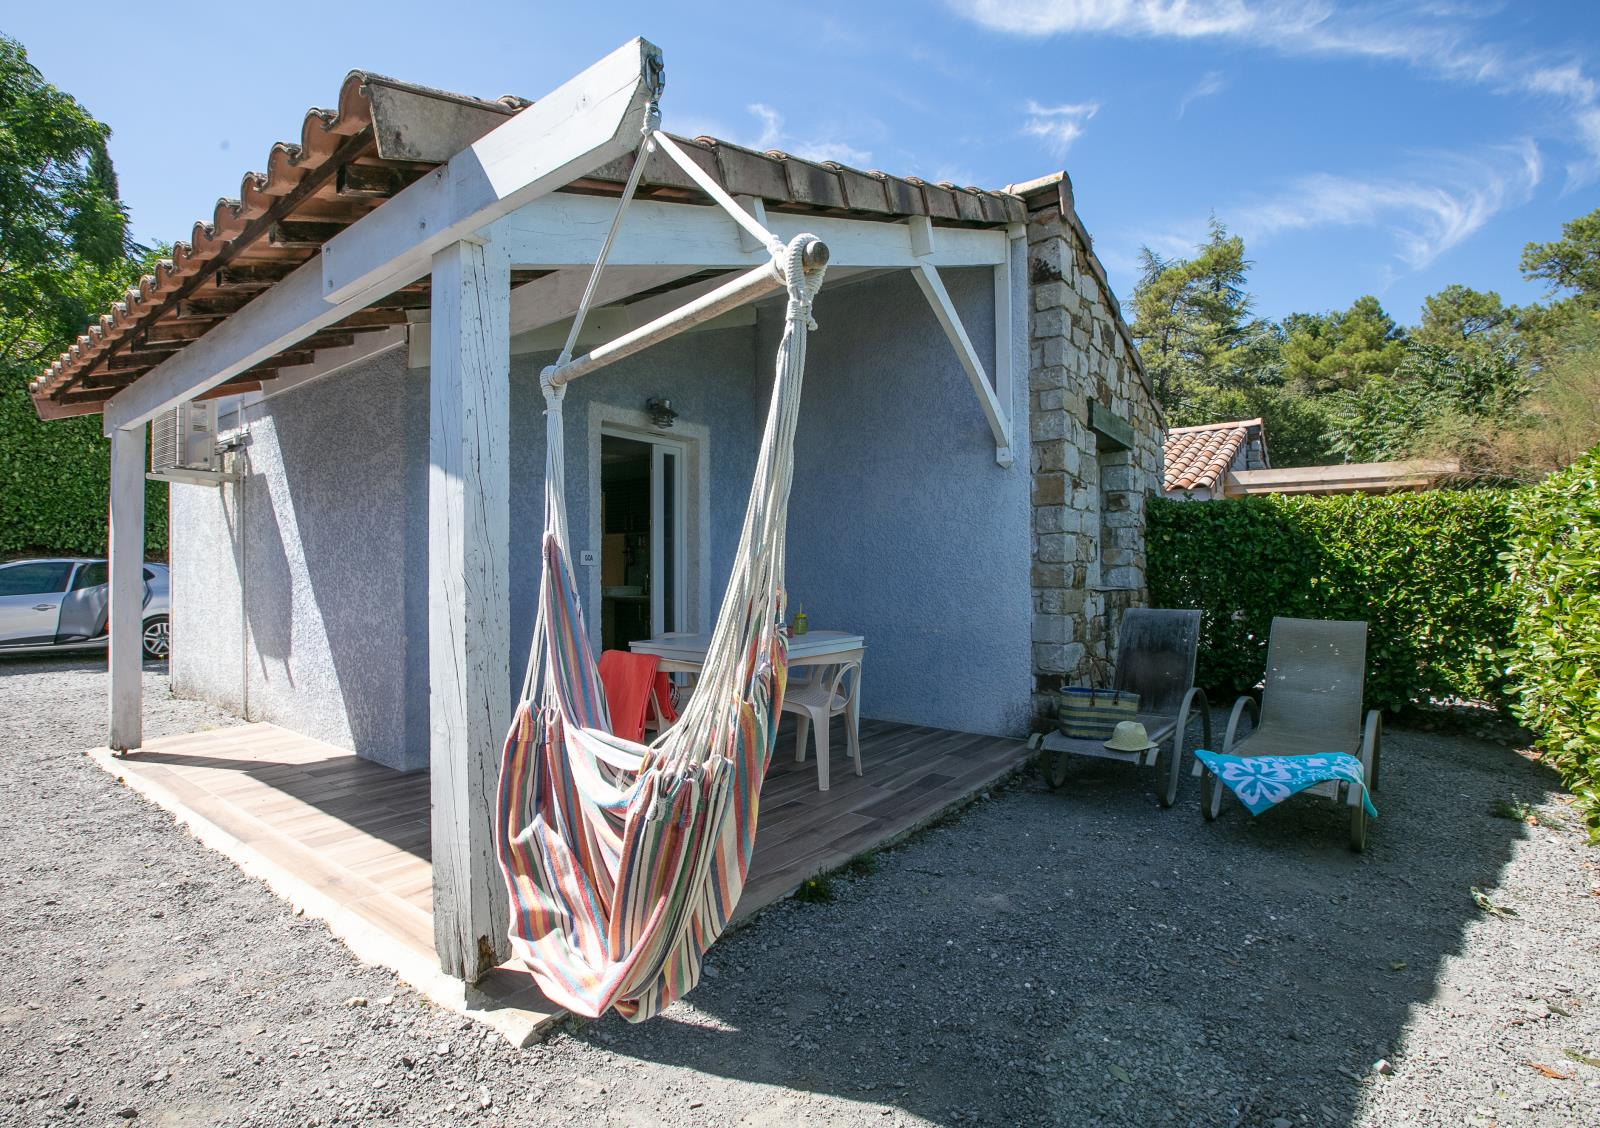 Huuraccommodatie - Maisonnette (Cottage With Air Conditionner 6 People) - Domaine des Chênes